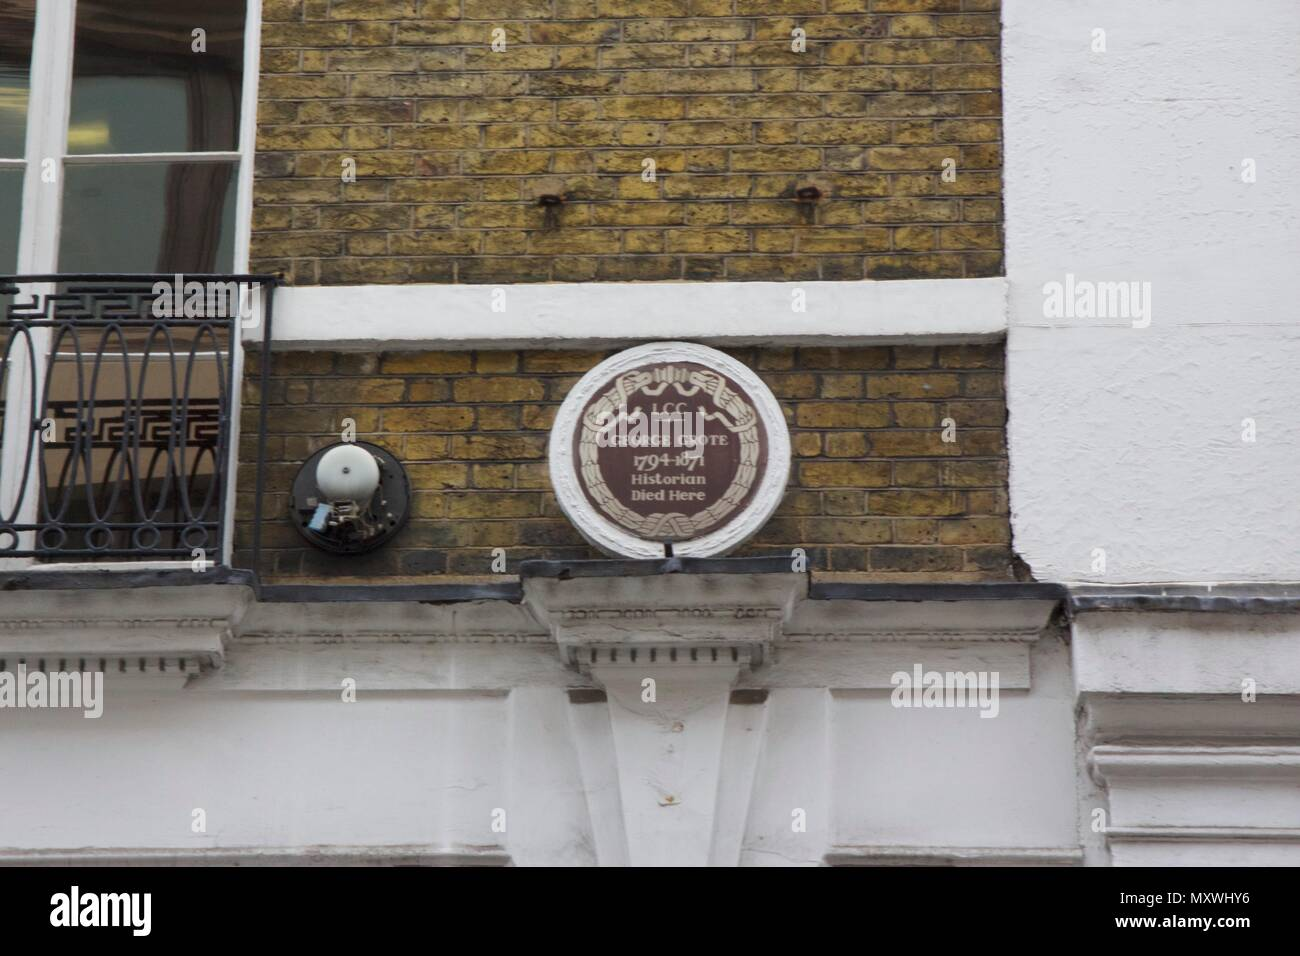 English heritage plaque for George Grote (1794-1871), a historian who died at 12 Savile Row, Mayfair, London - Stock Image